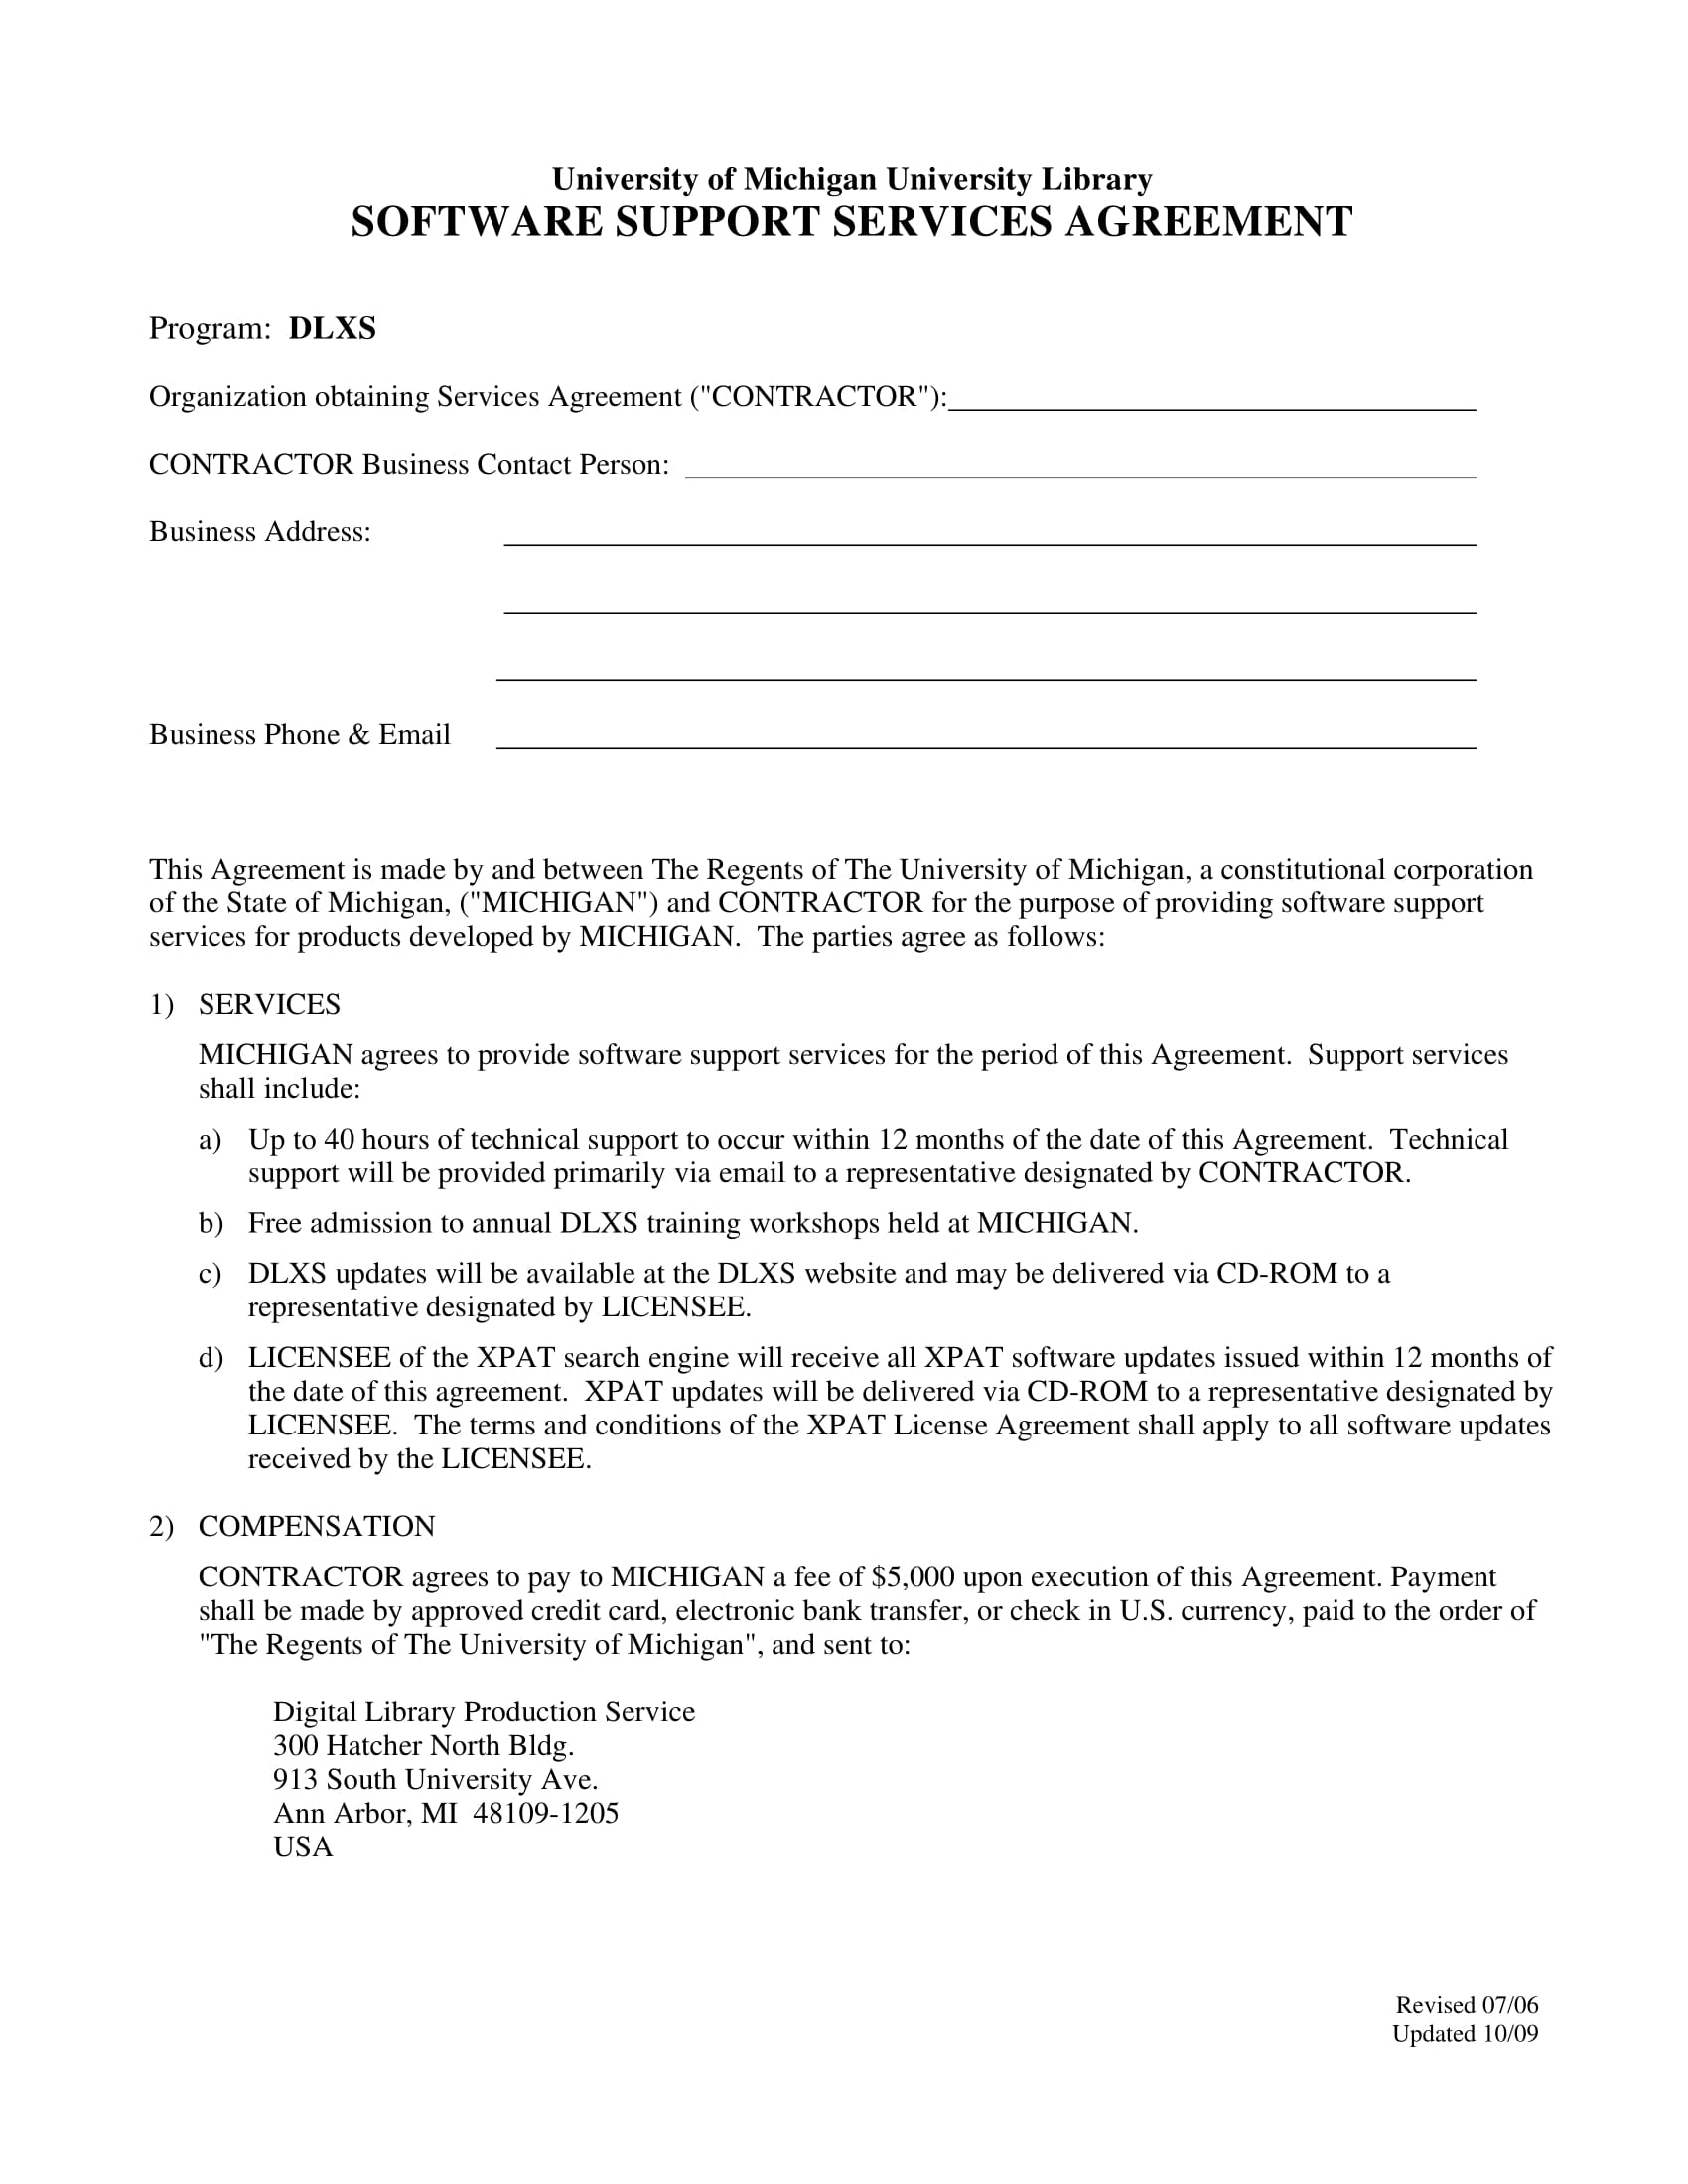 software support services agreement contract form 1